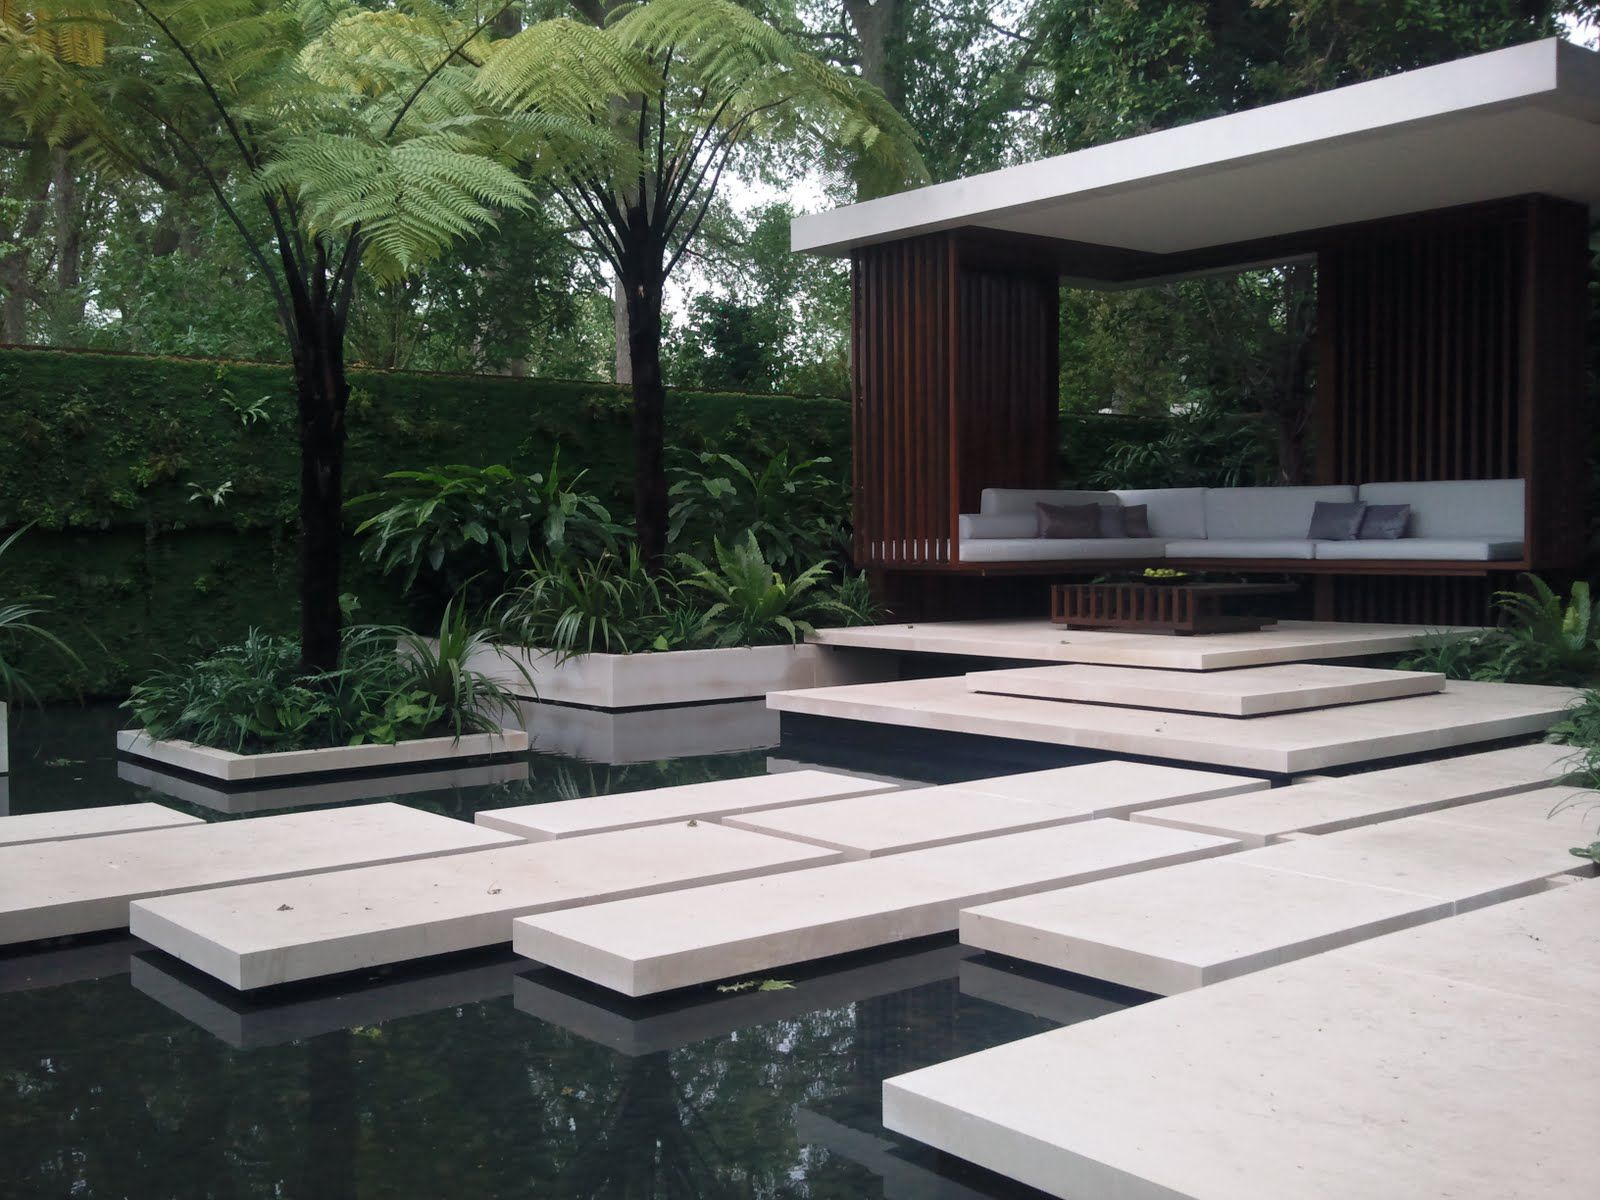 Pond with stepping stones and seating area jamieson for Modern garden pond designs